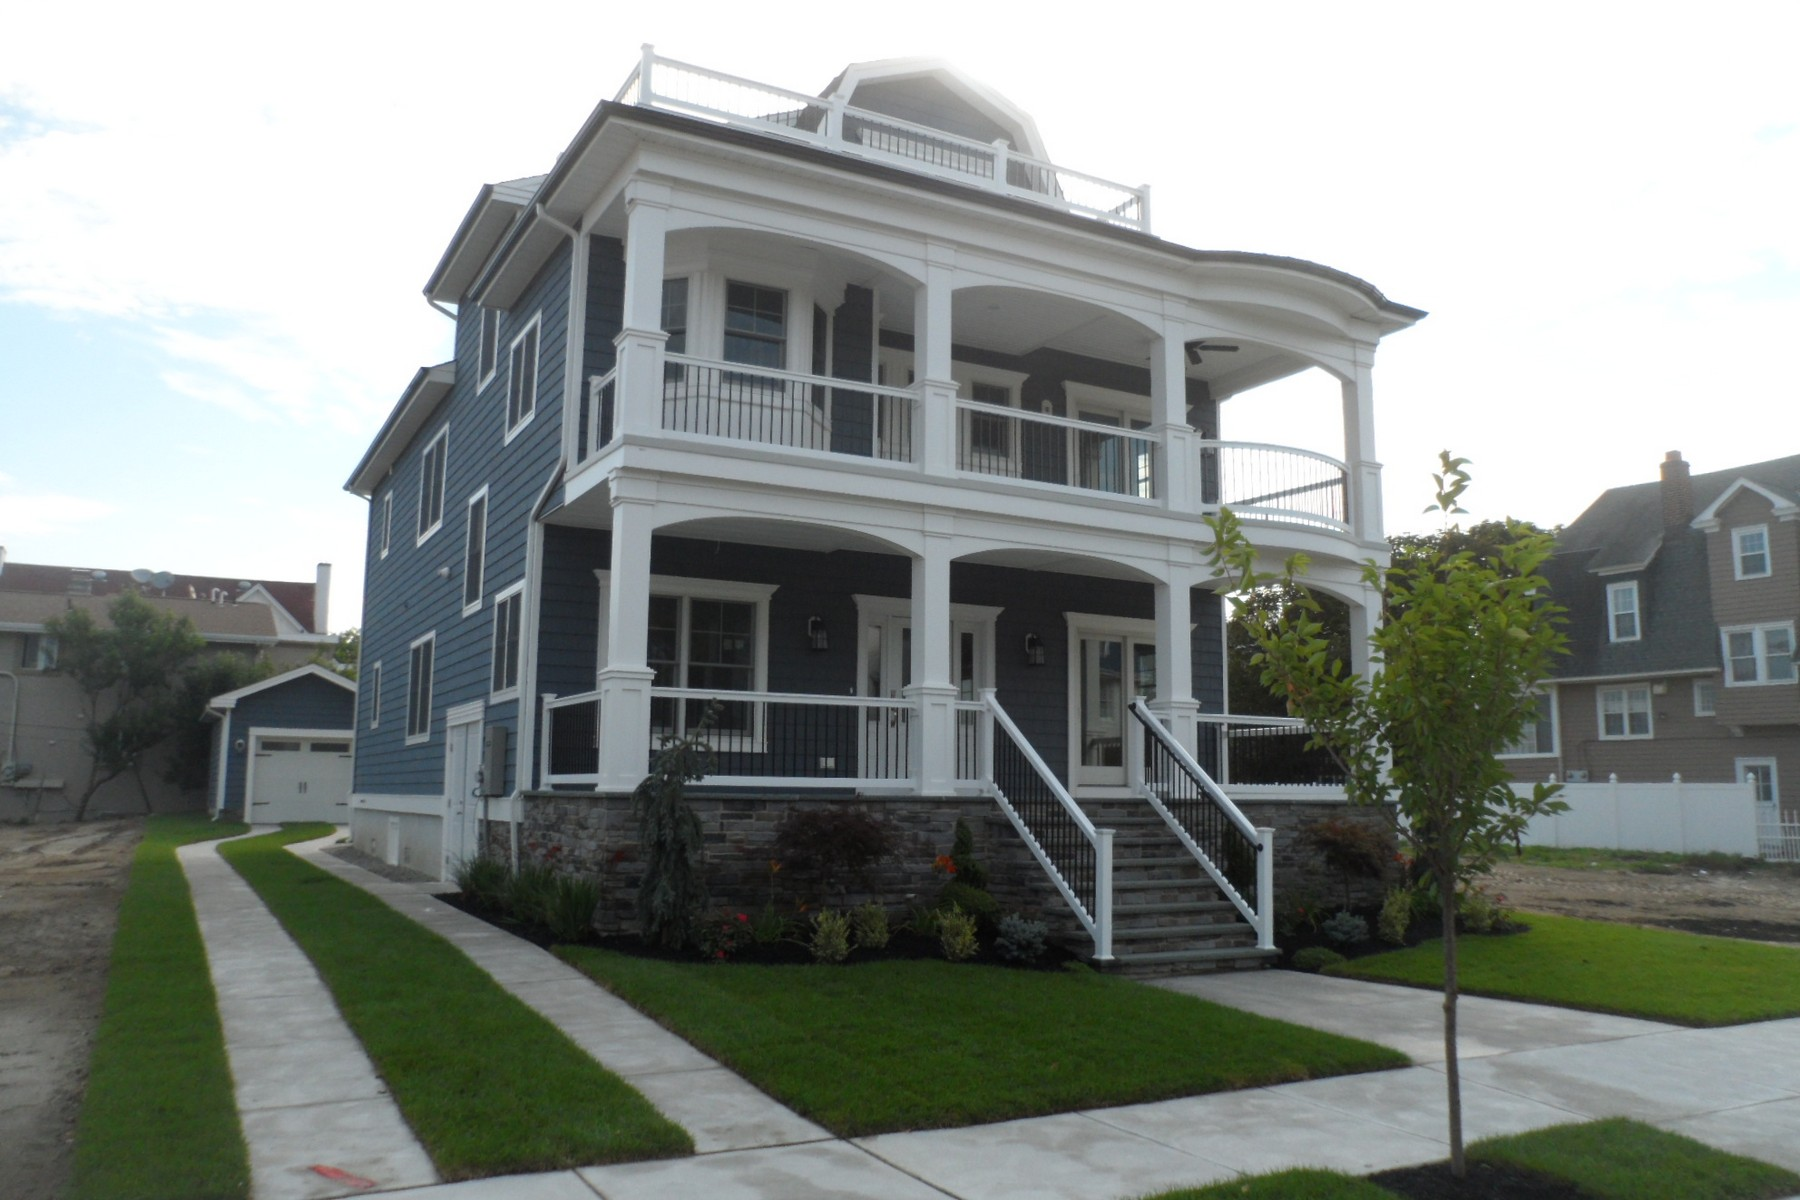 Single Family Home for Sale at 3 S Dudley Avenue Ventnor, New Jersey 08406 United States